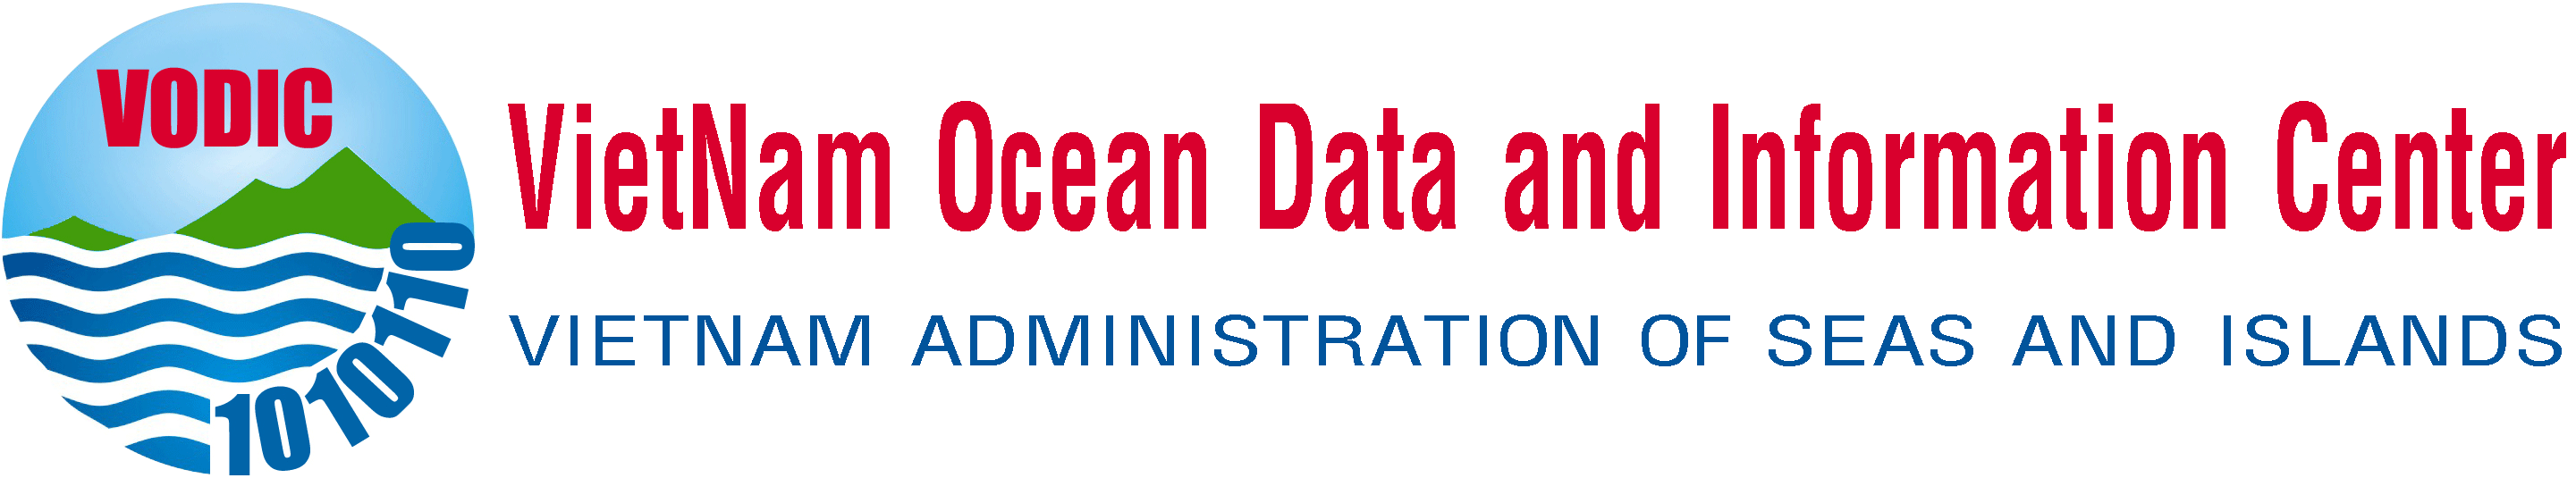 VietNam Ocean Data and Information Center